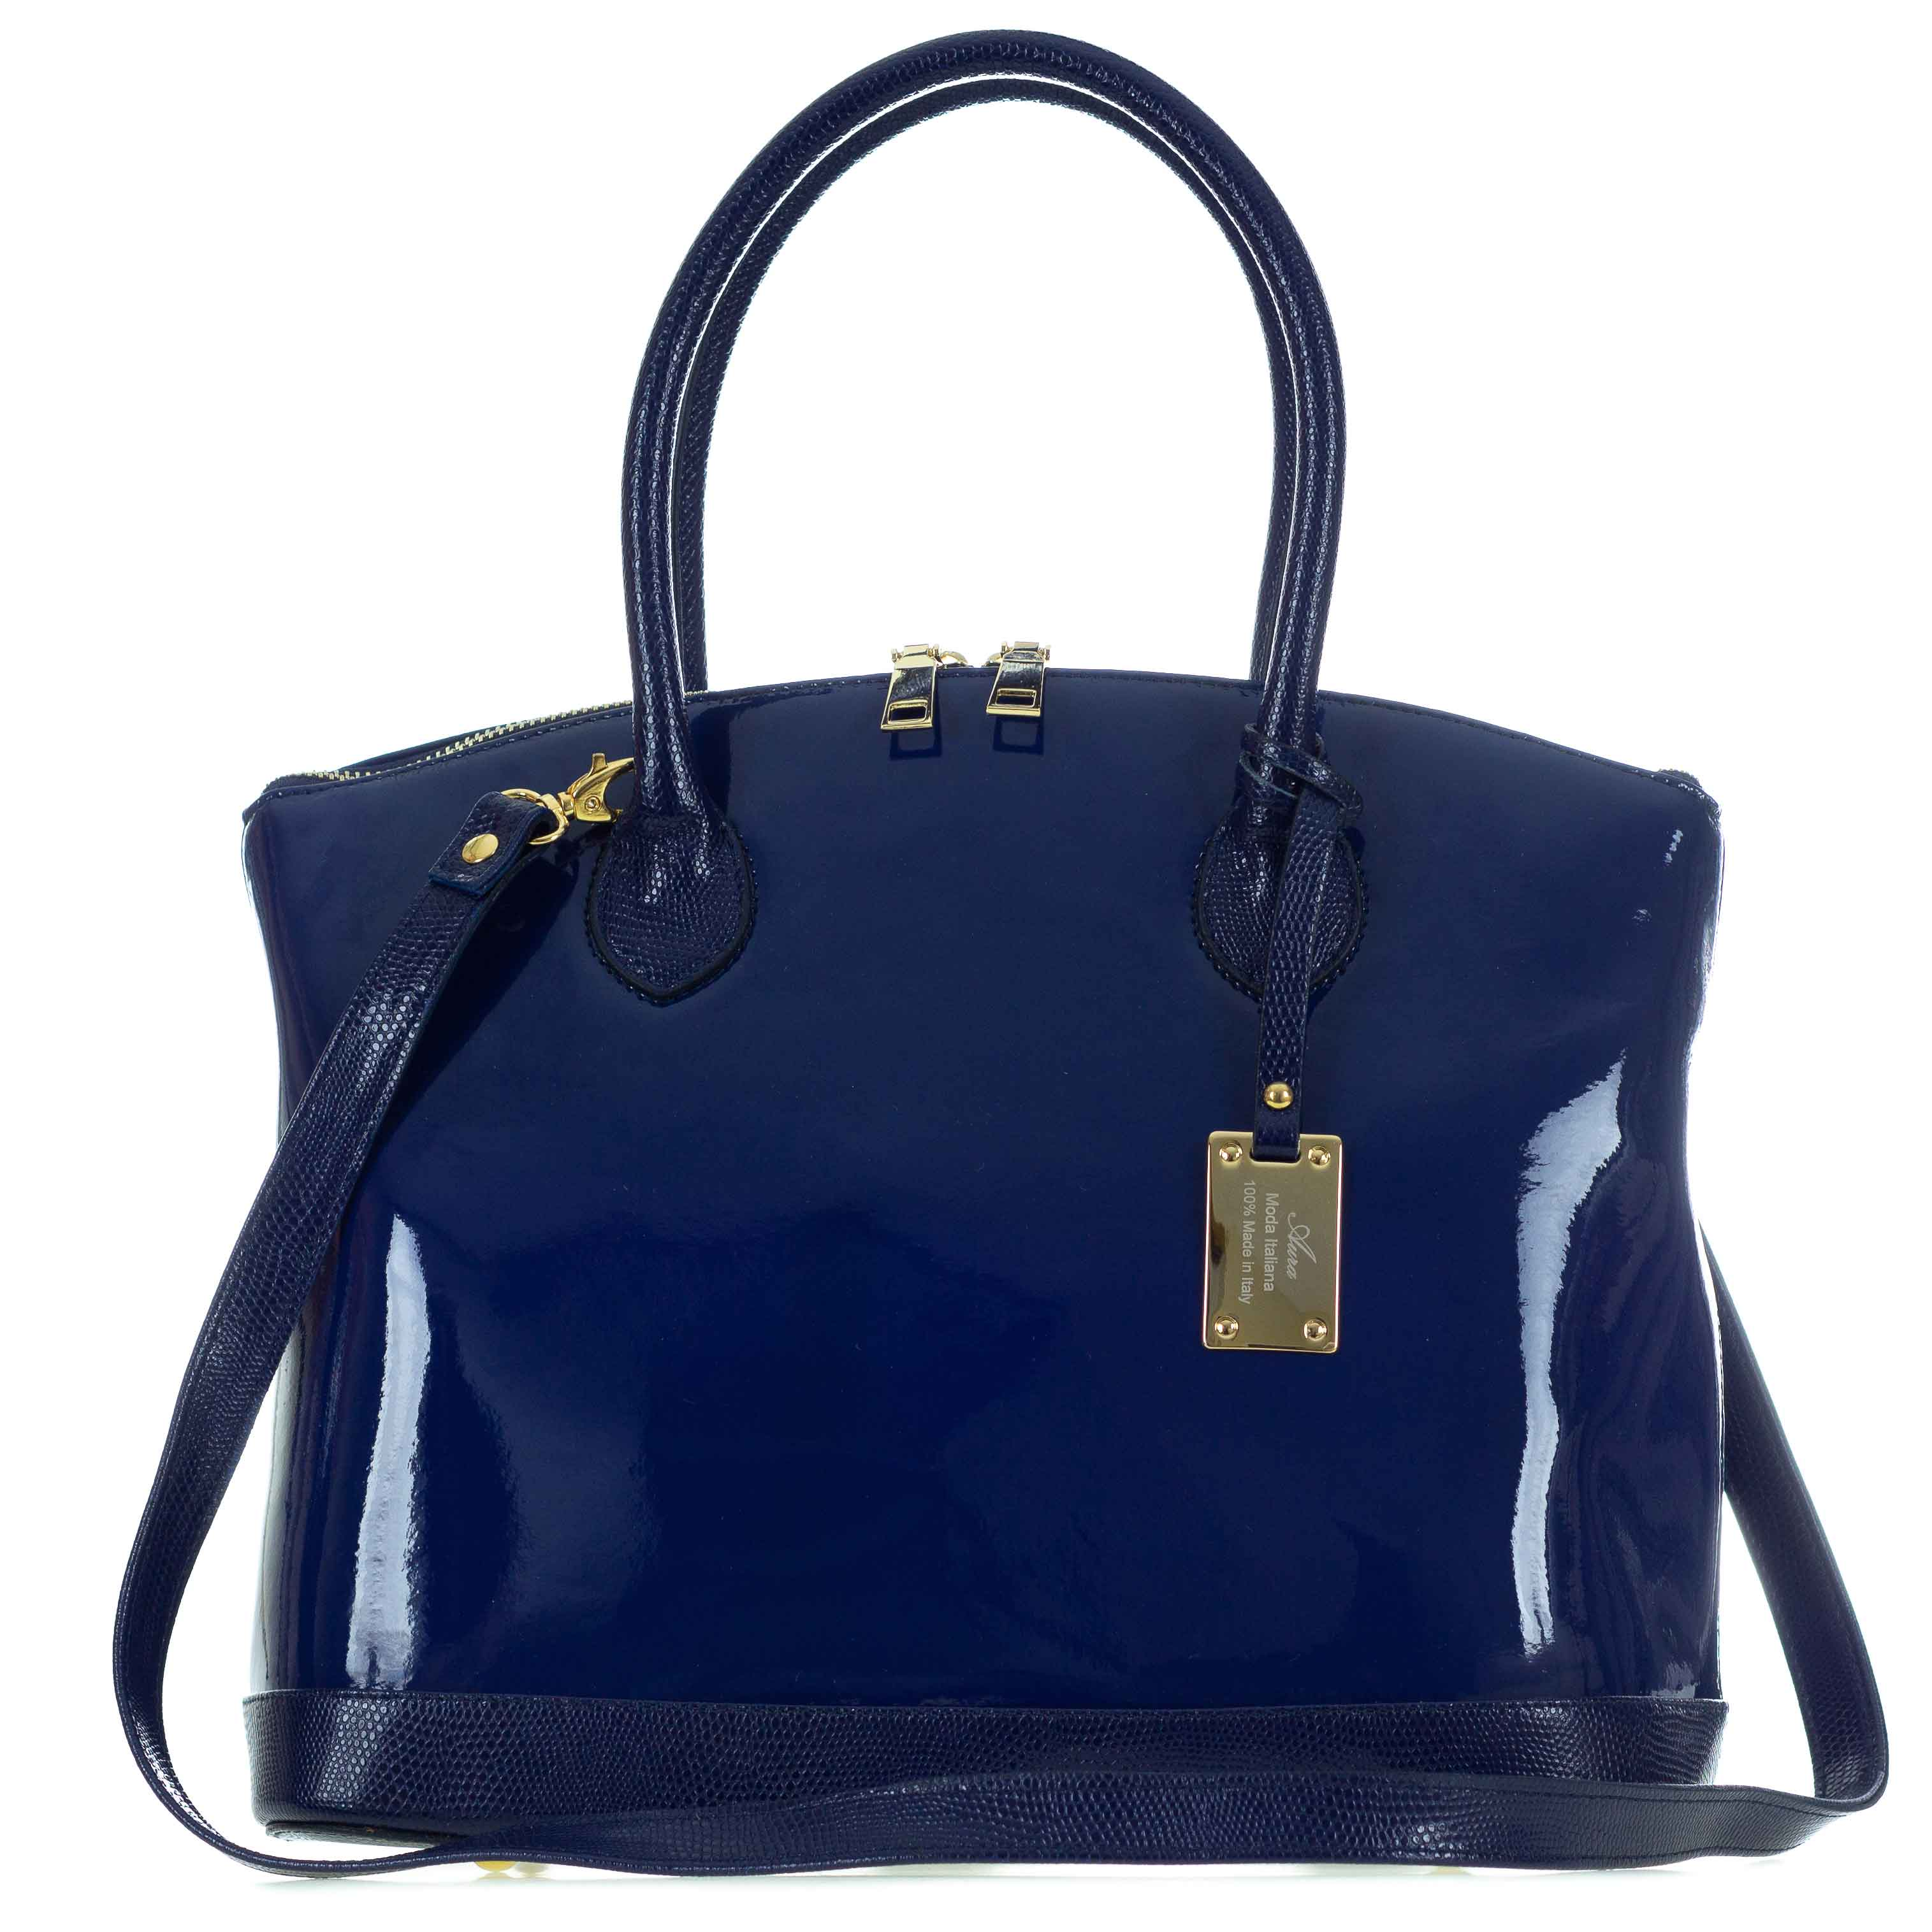 AURA Italian Made Navy Blue Patent Leather Tote